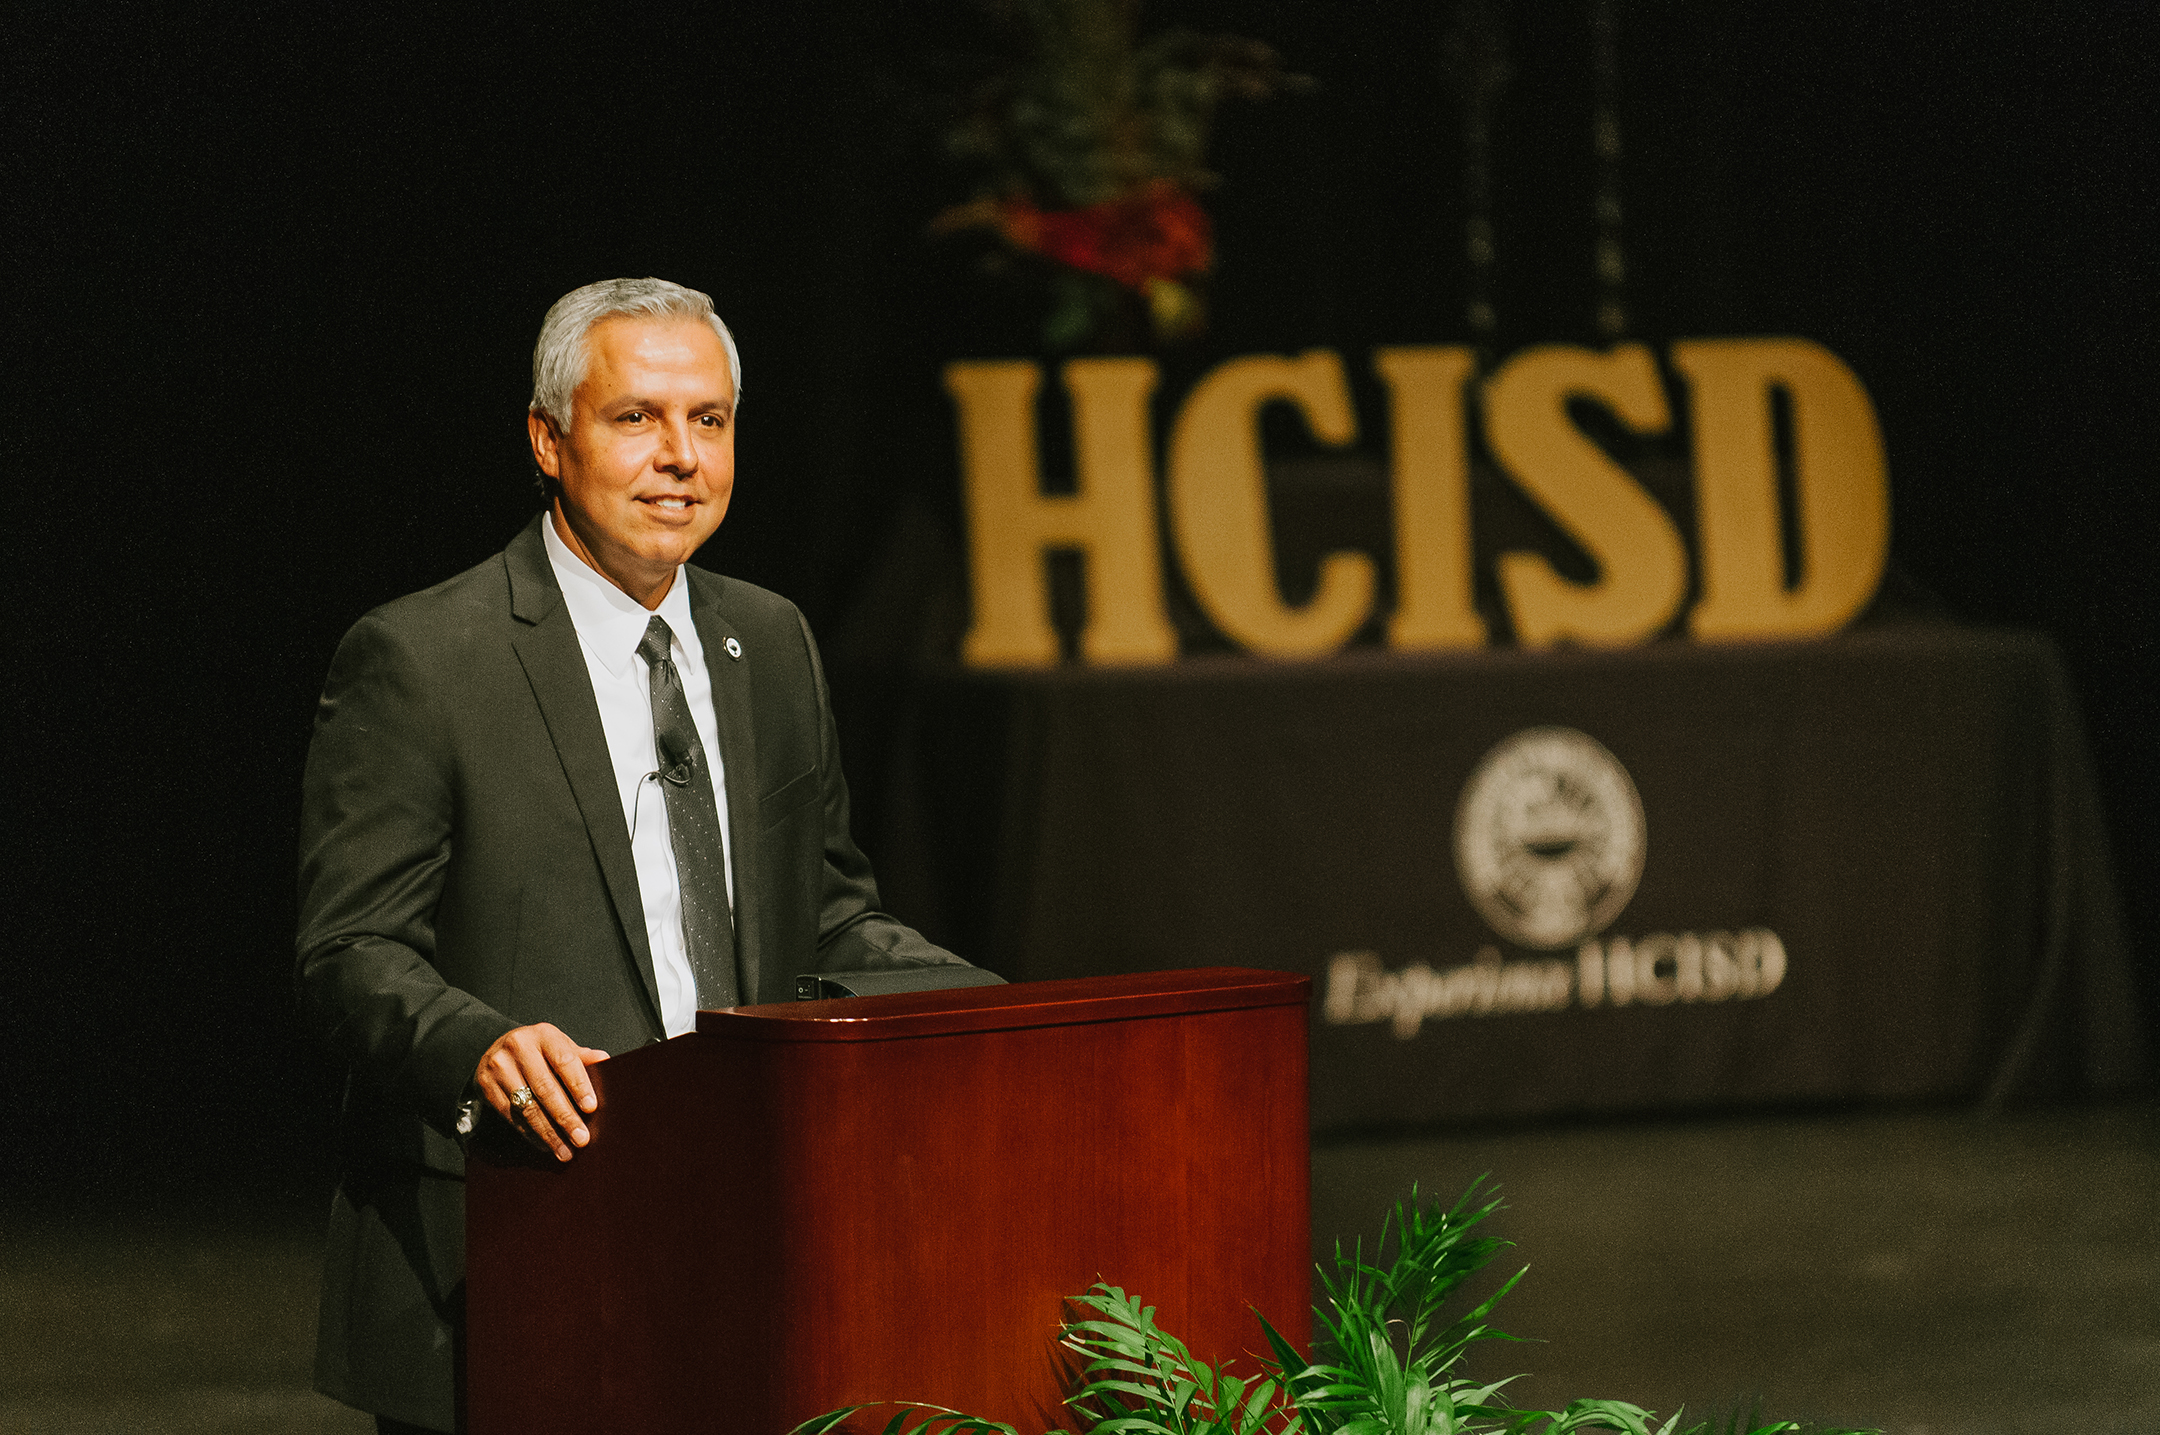 Dr. Cavazos named 2017 Regional Superintendent of the Year